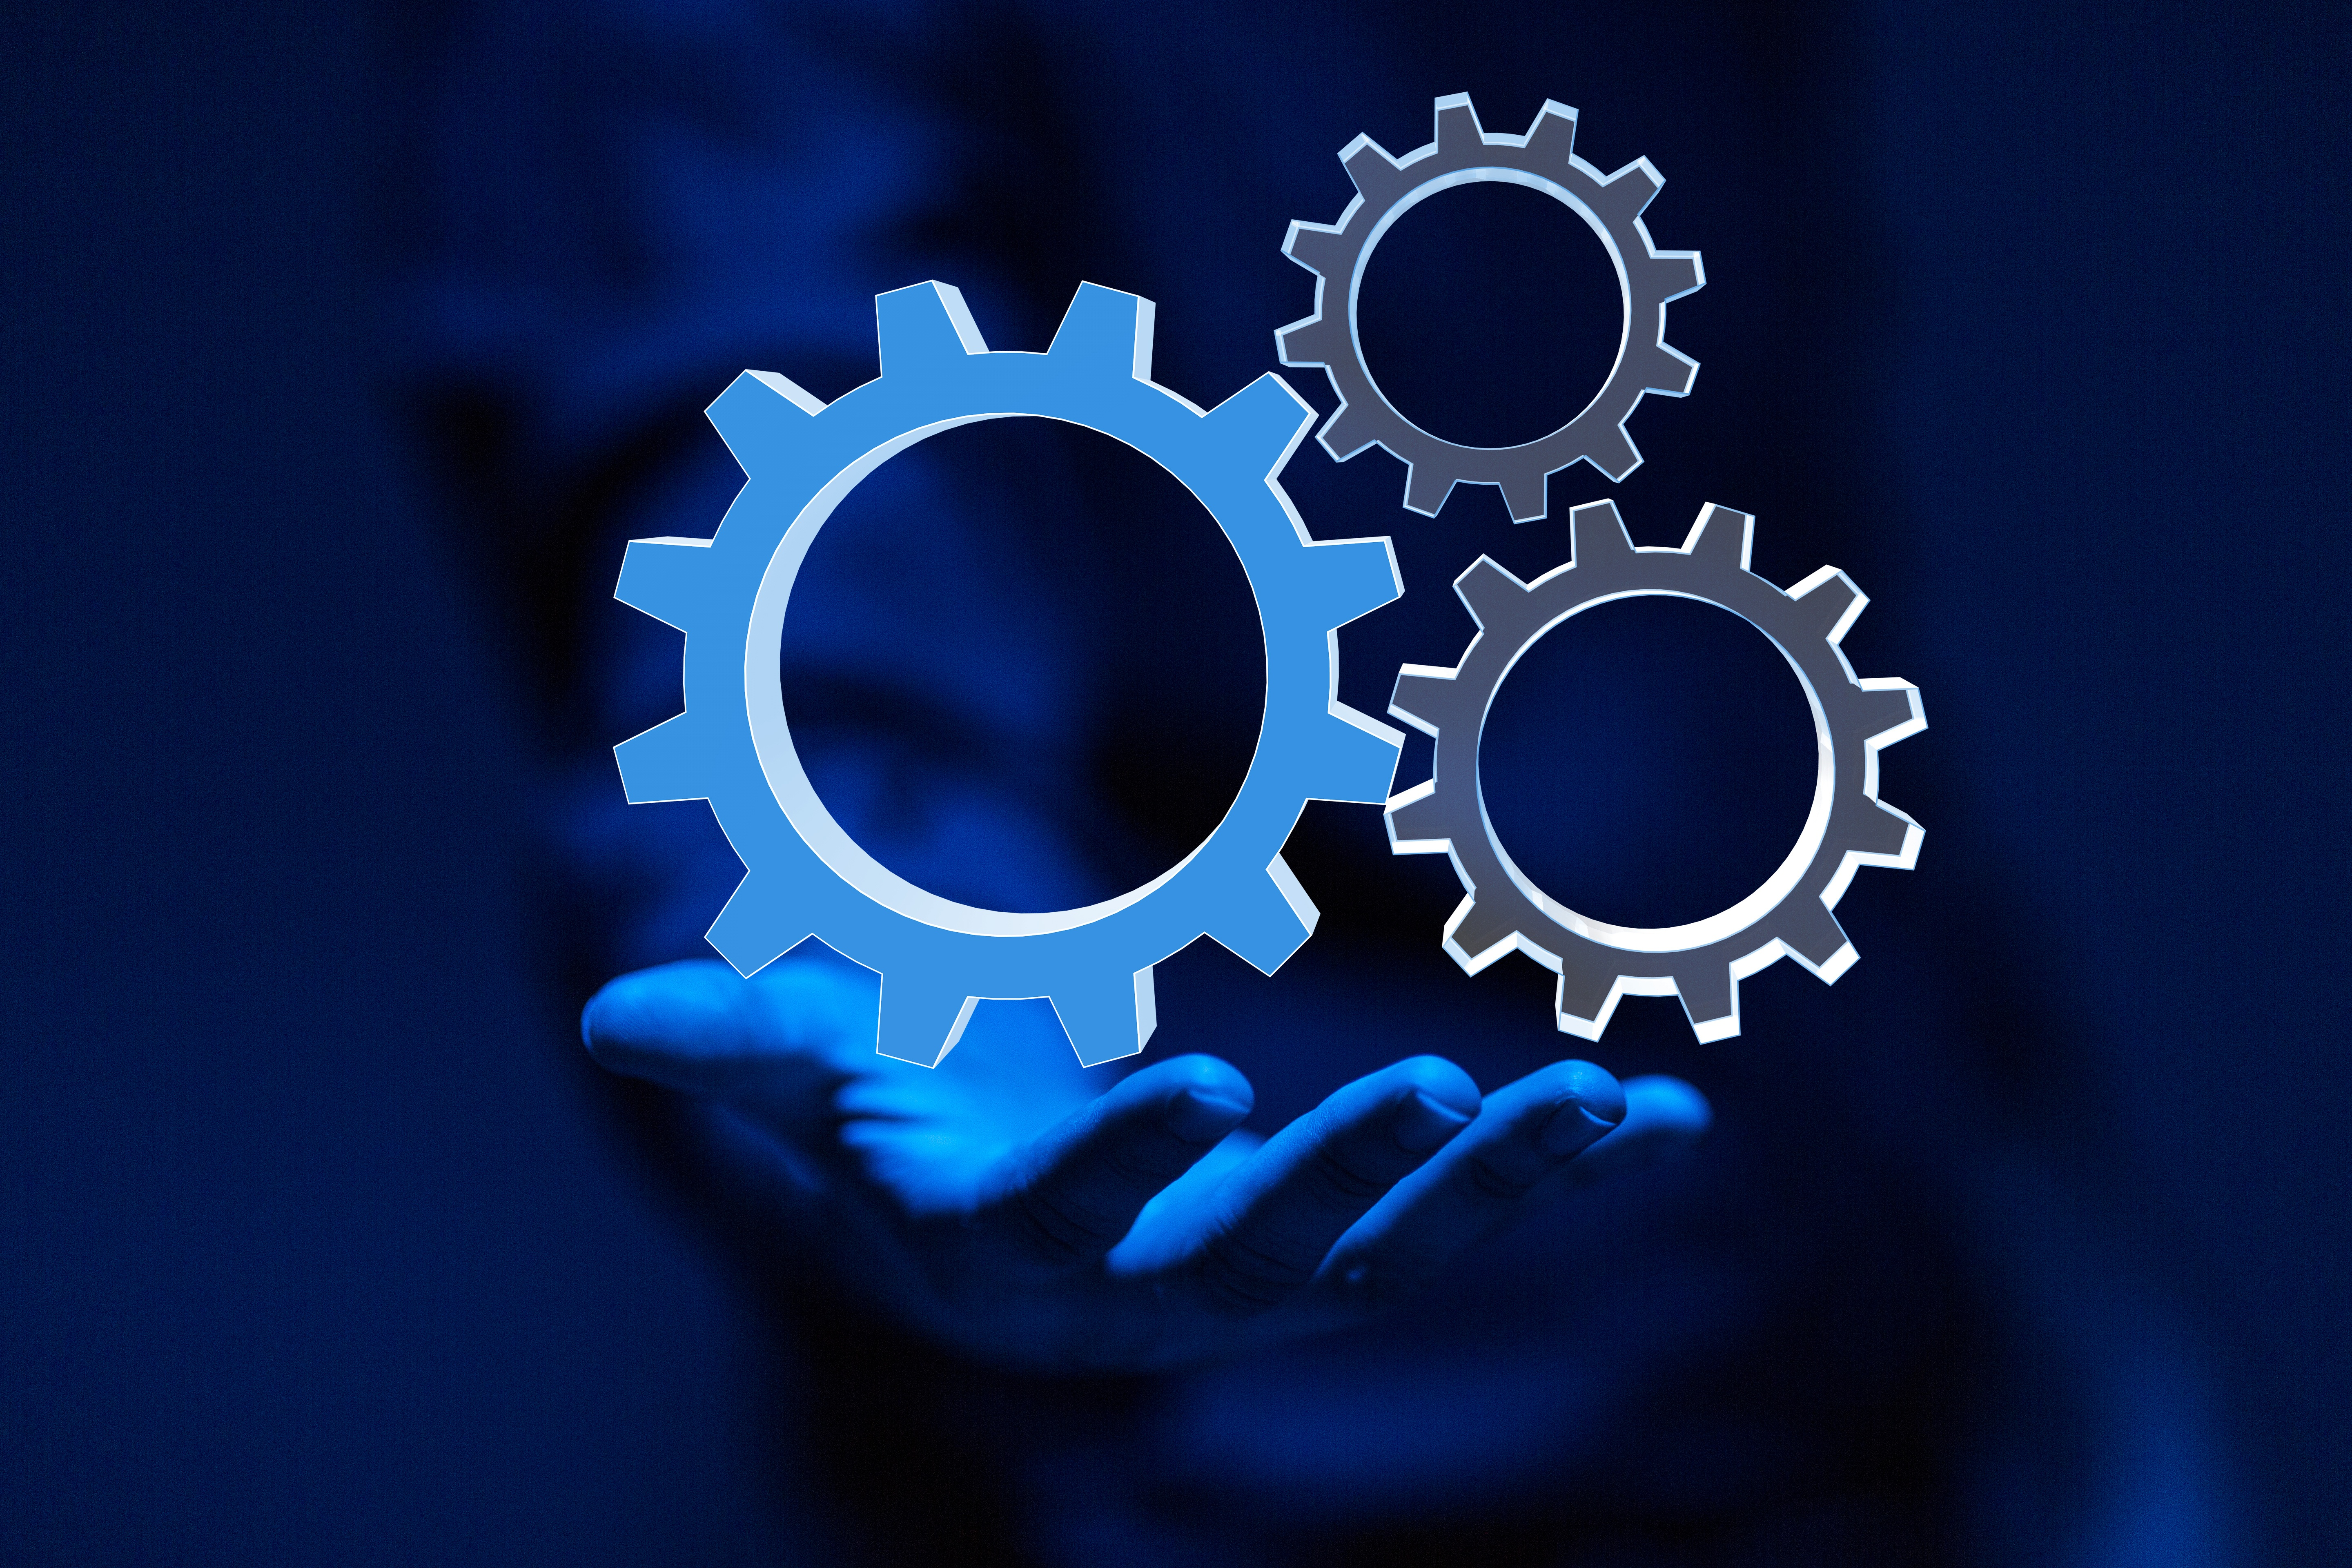 Image of gears hovering over an outstreahced hand.